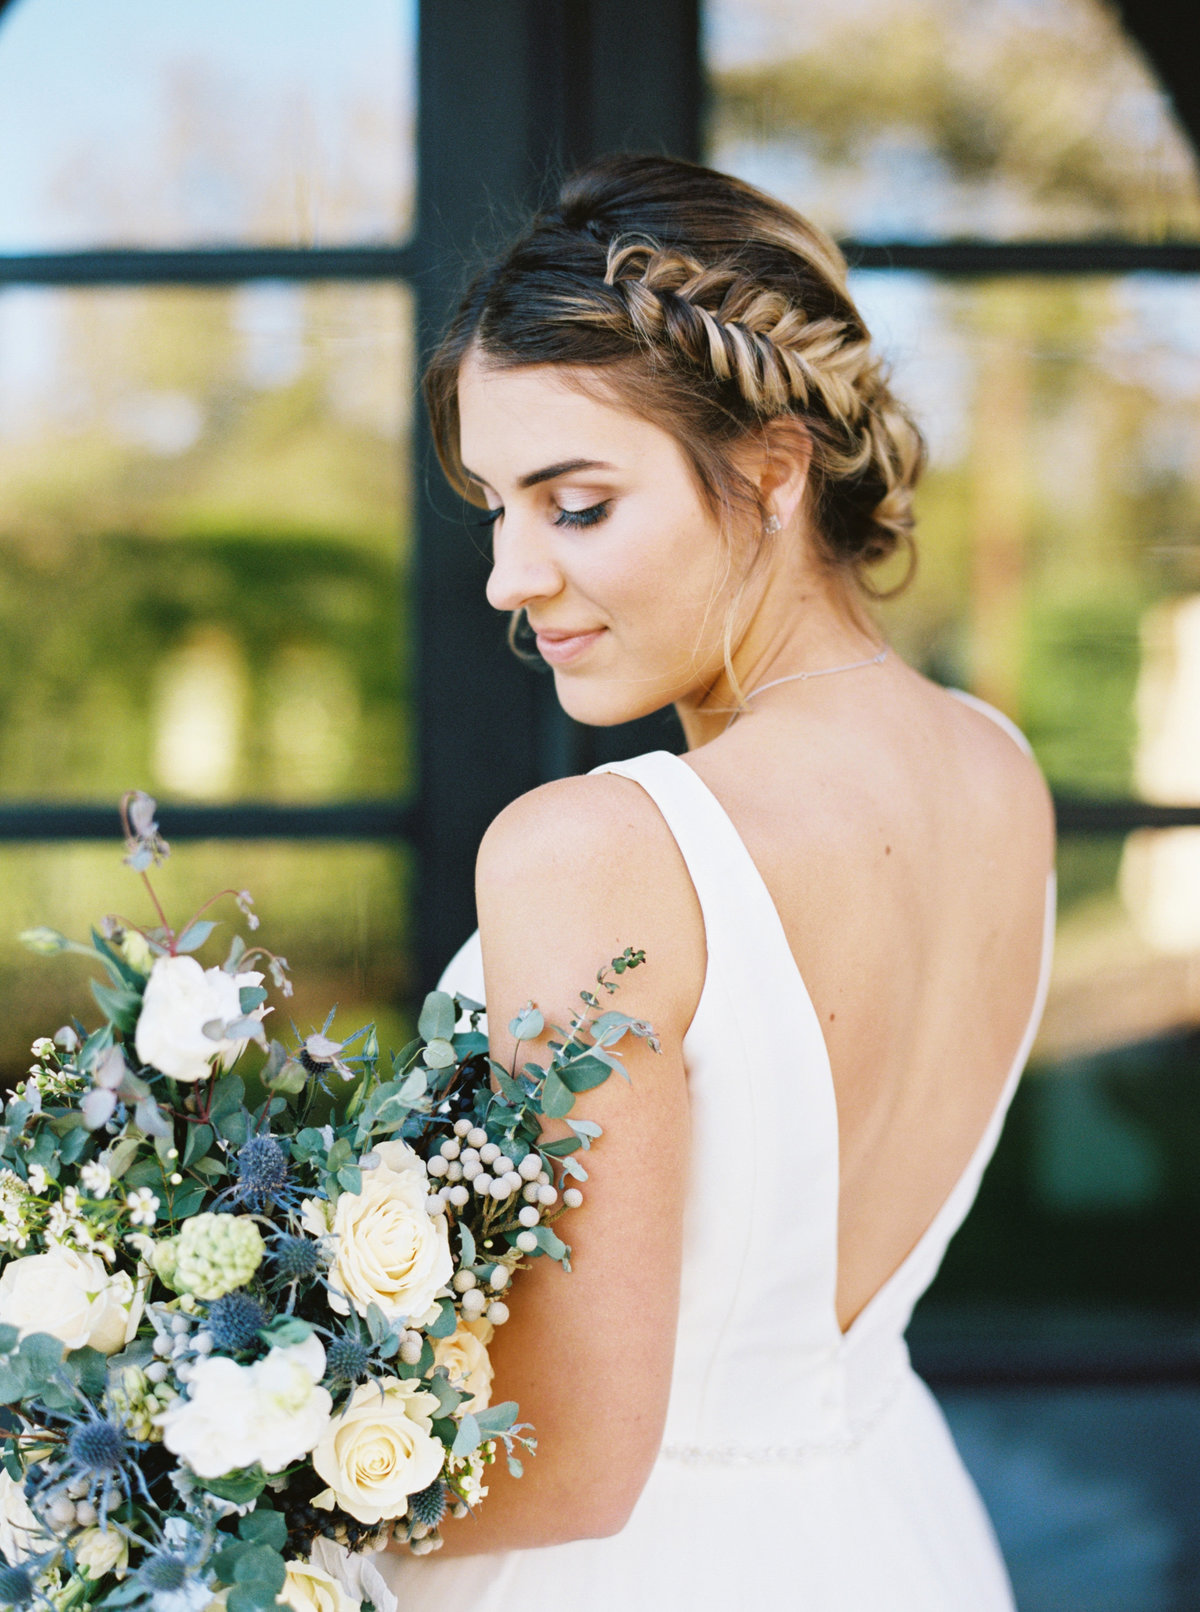 Bride with braided updo, A line wedding bridal dress, and her white and greenery bouquet.